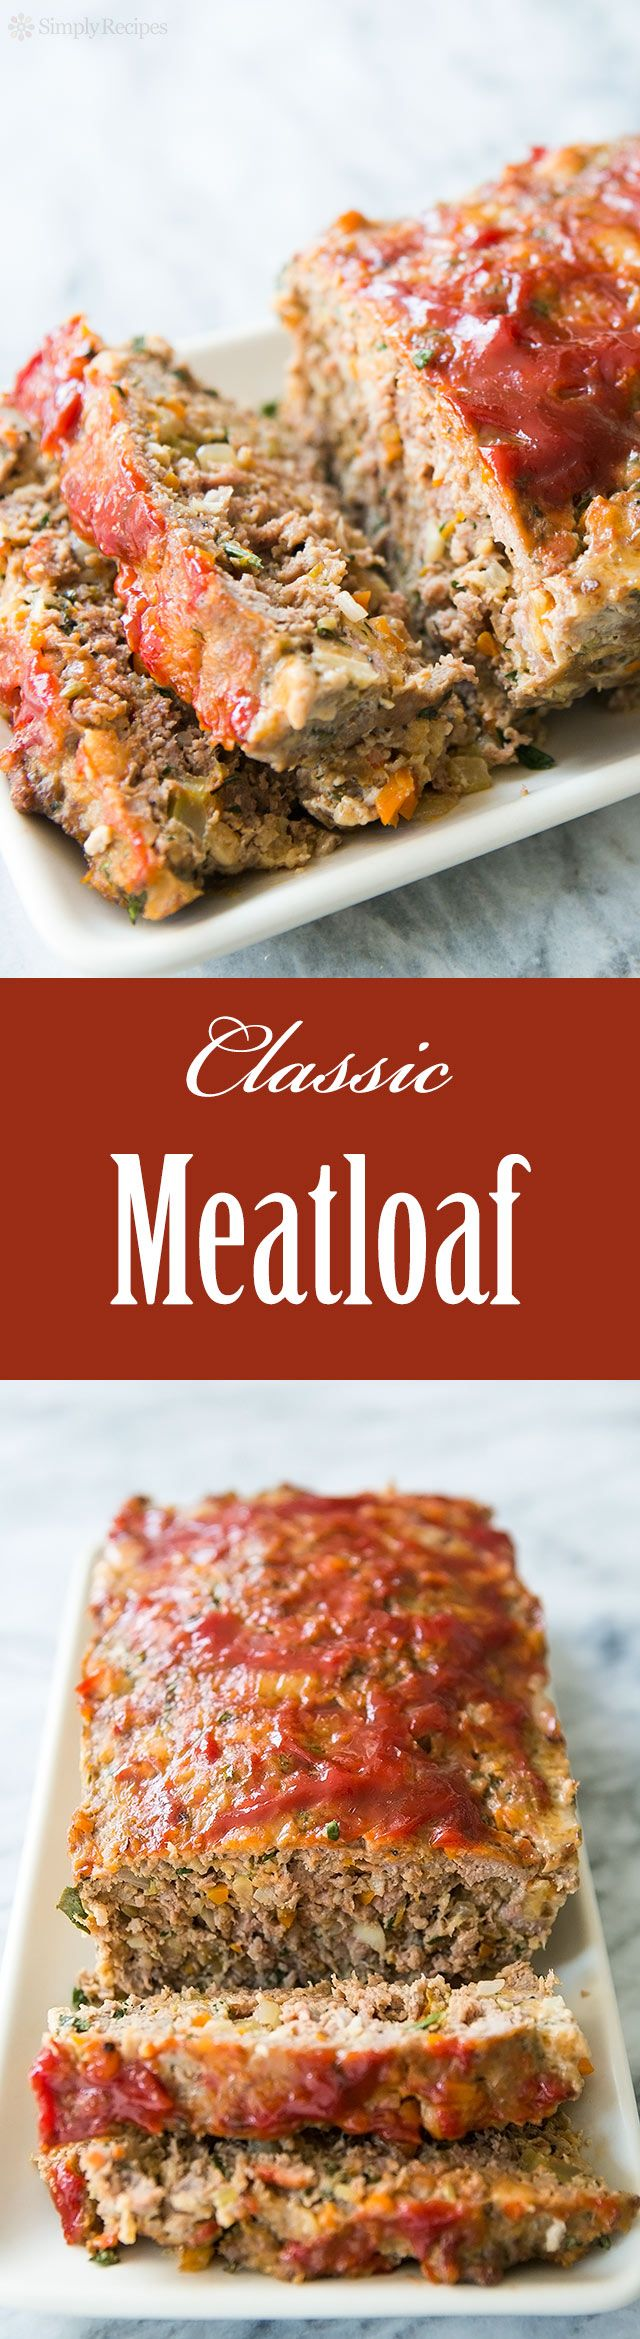 Traditional meatloaf recipe with the delicious twist of using Italian pork sausage in addition to ground beef. One wouldn't normally think of meatloaf as something to serve to company, but this meatloaf is exceptional! Great for family holiday gatherings. ~ SimplyRecipes.com